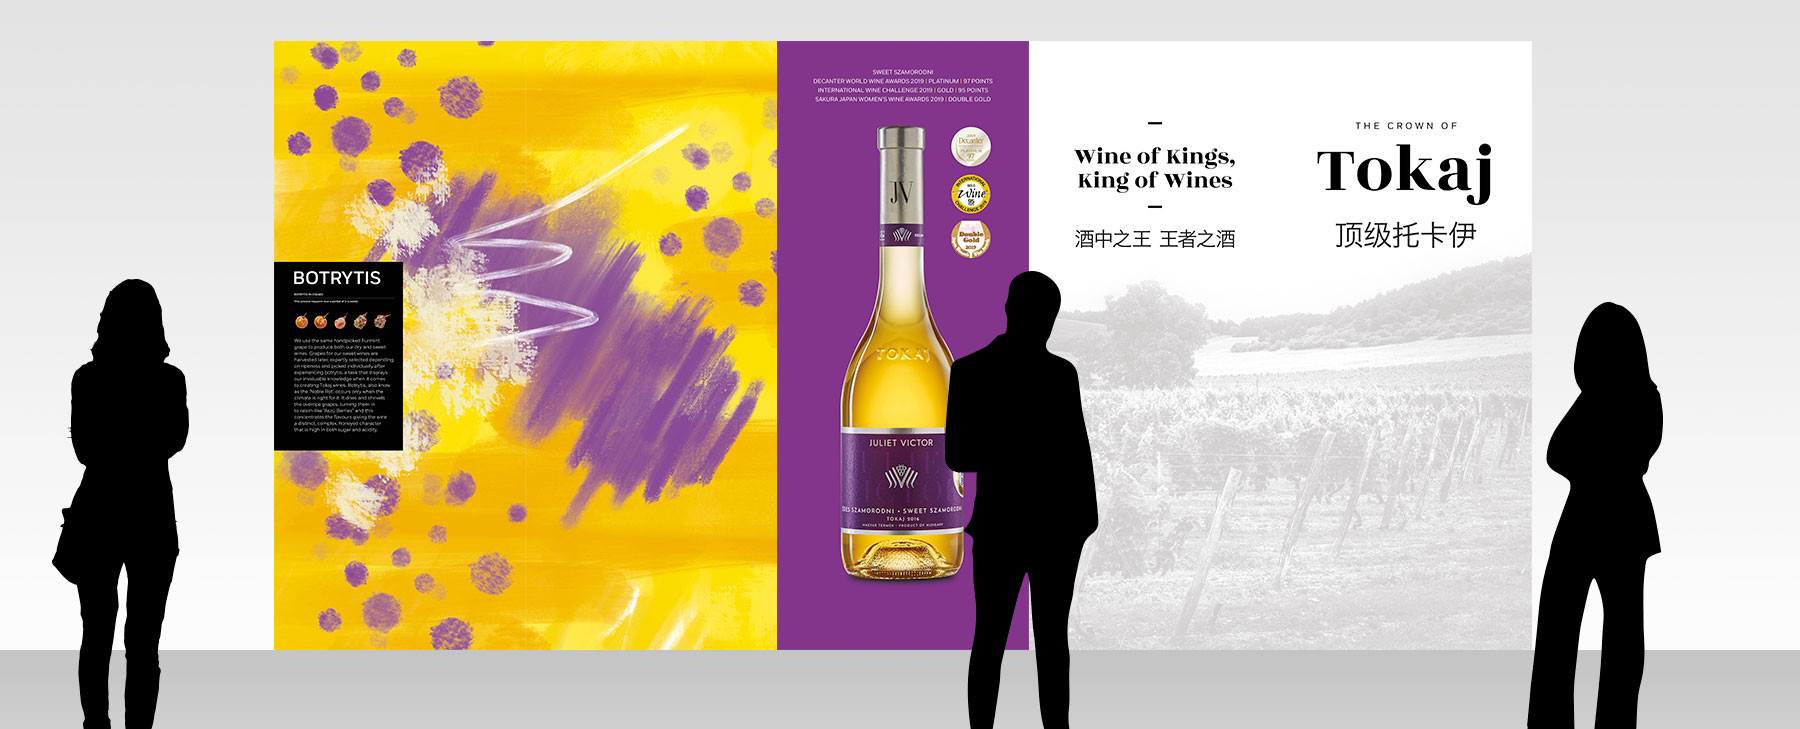 collage of Juliet Victor images including wine cask, logo and wine bottle with purple and black colour blocks